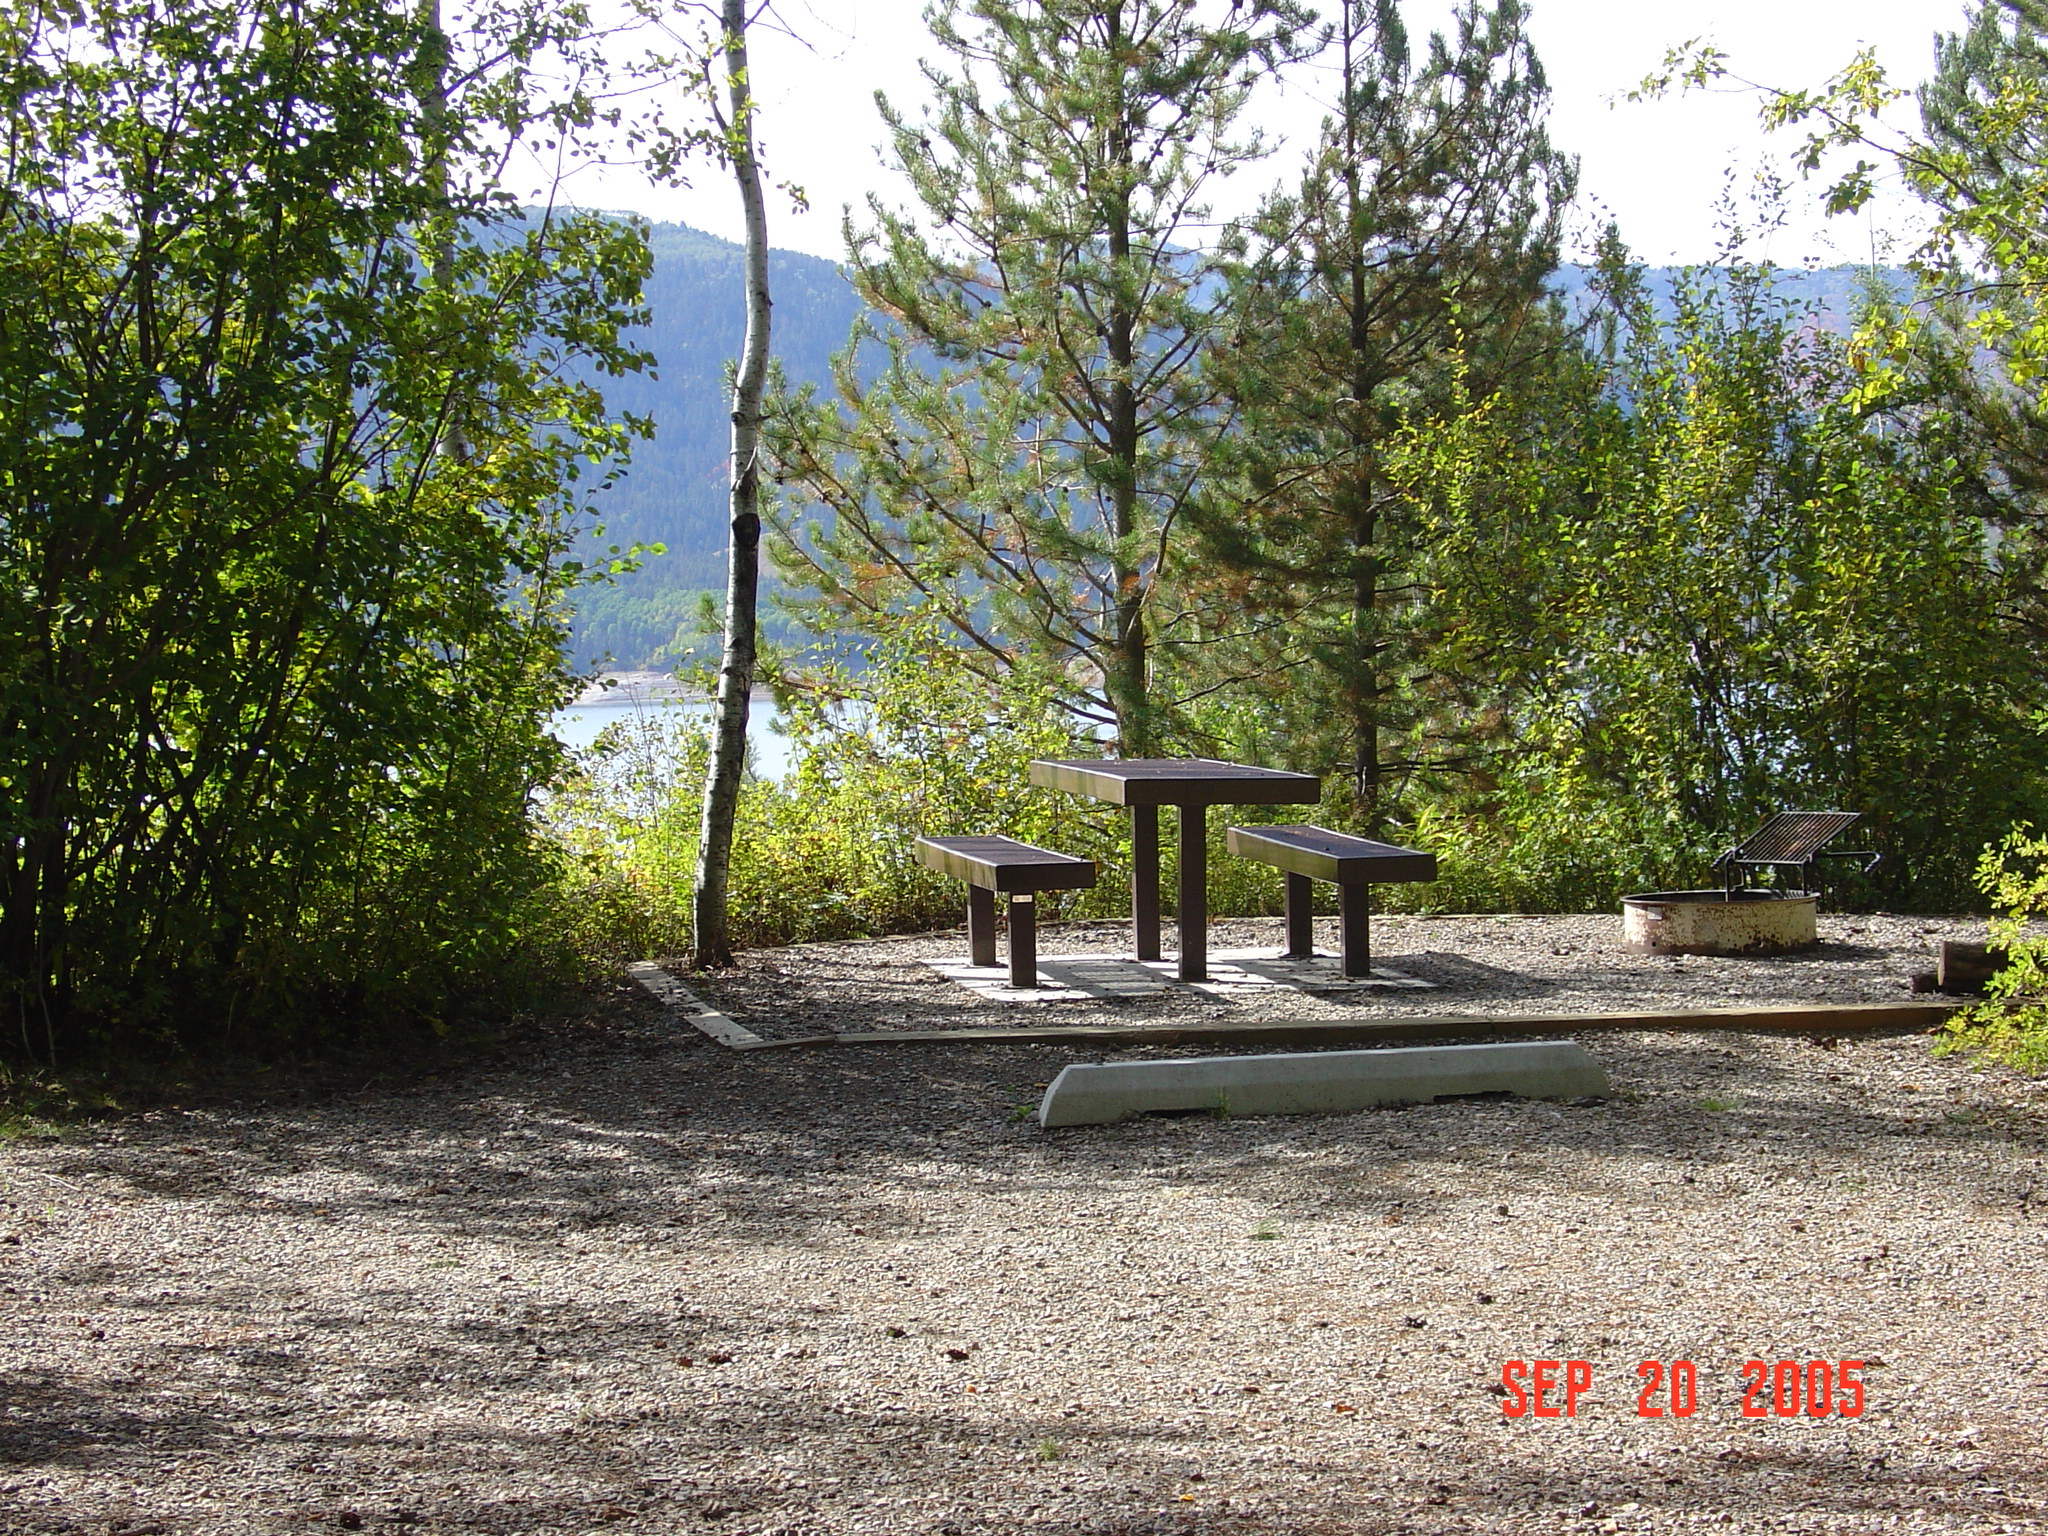 Palisades - Blowout Campground